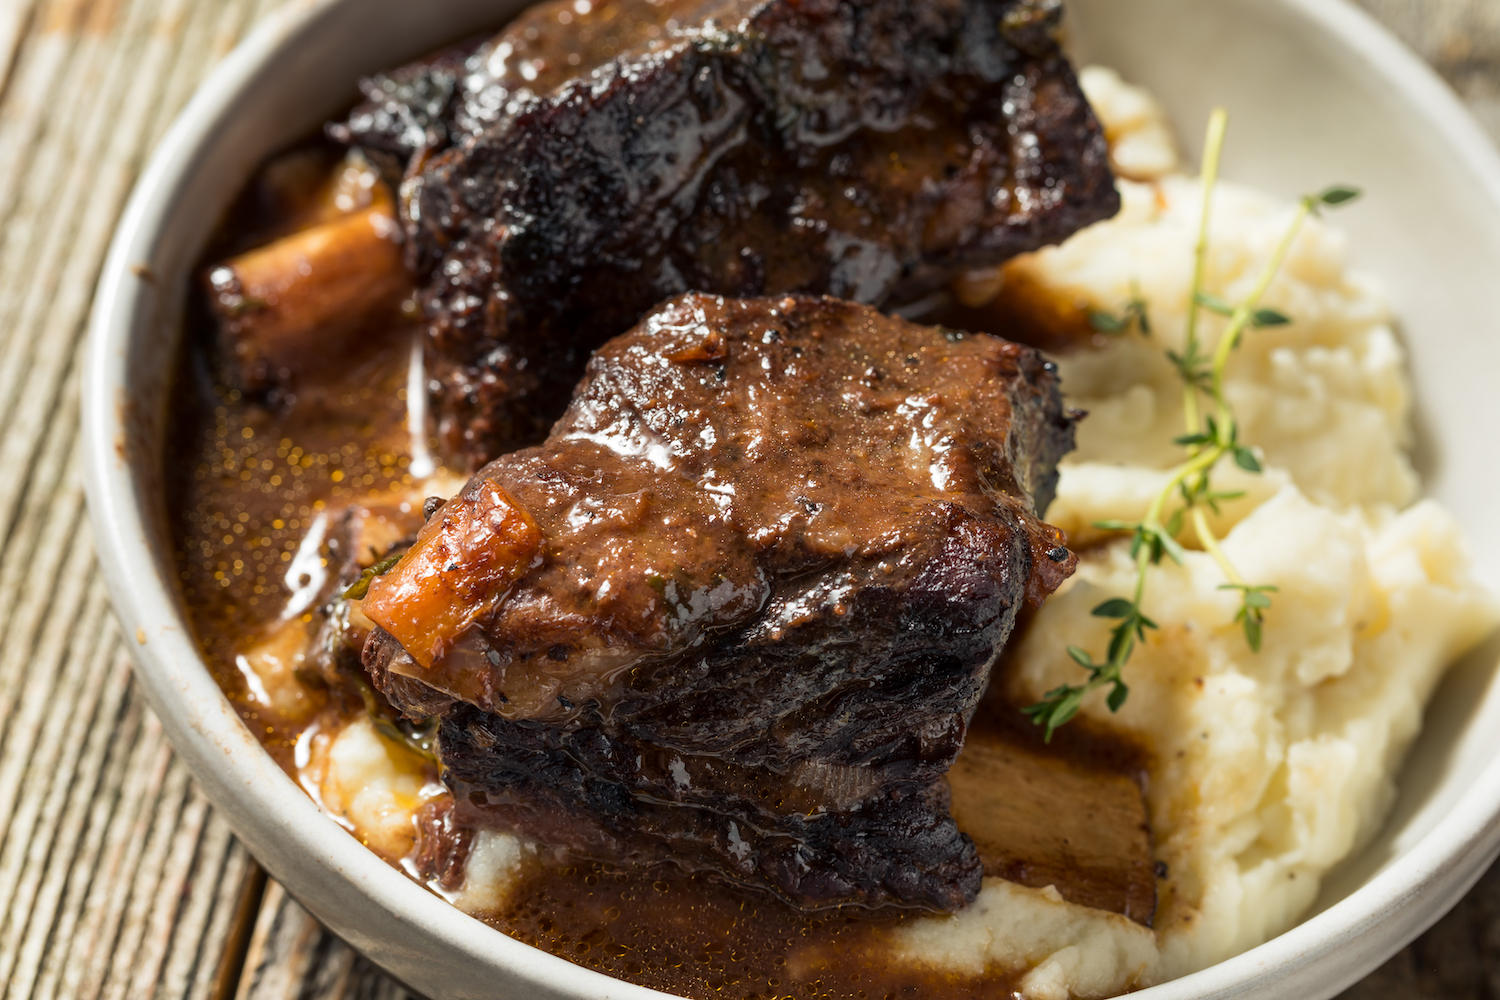 These red wine-braised short ribs are fall-off-the-bone tender